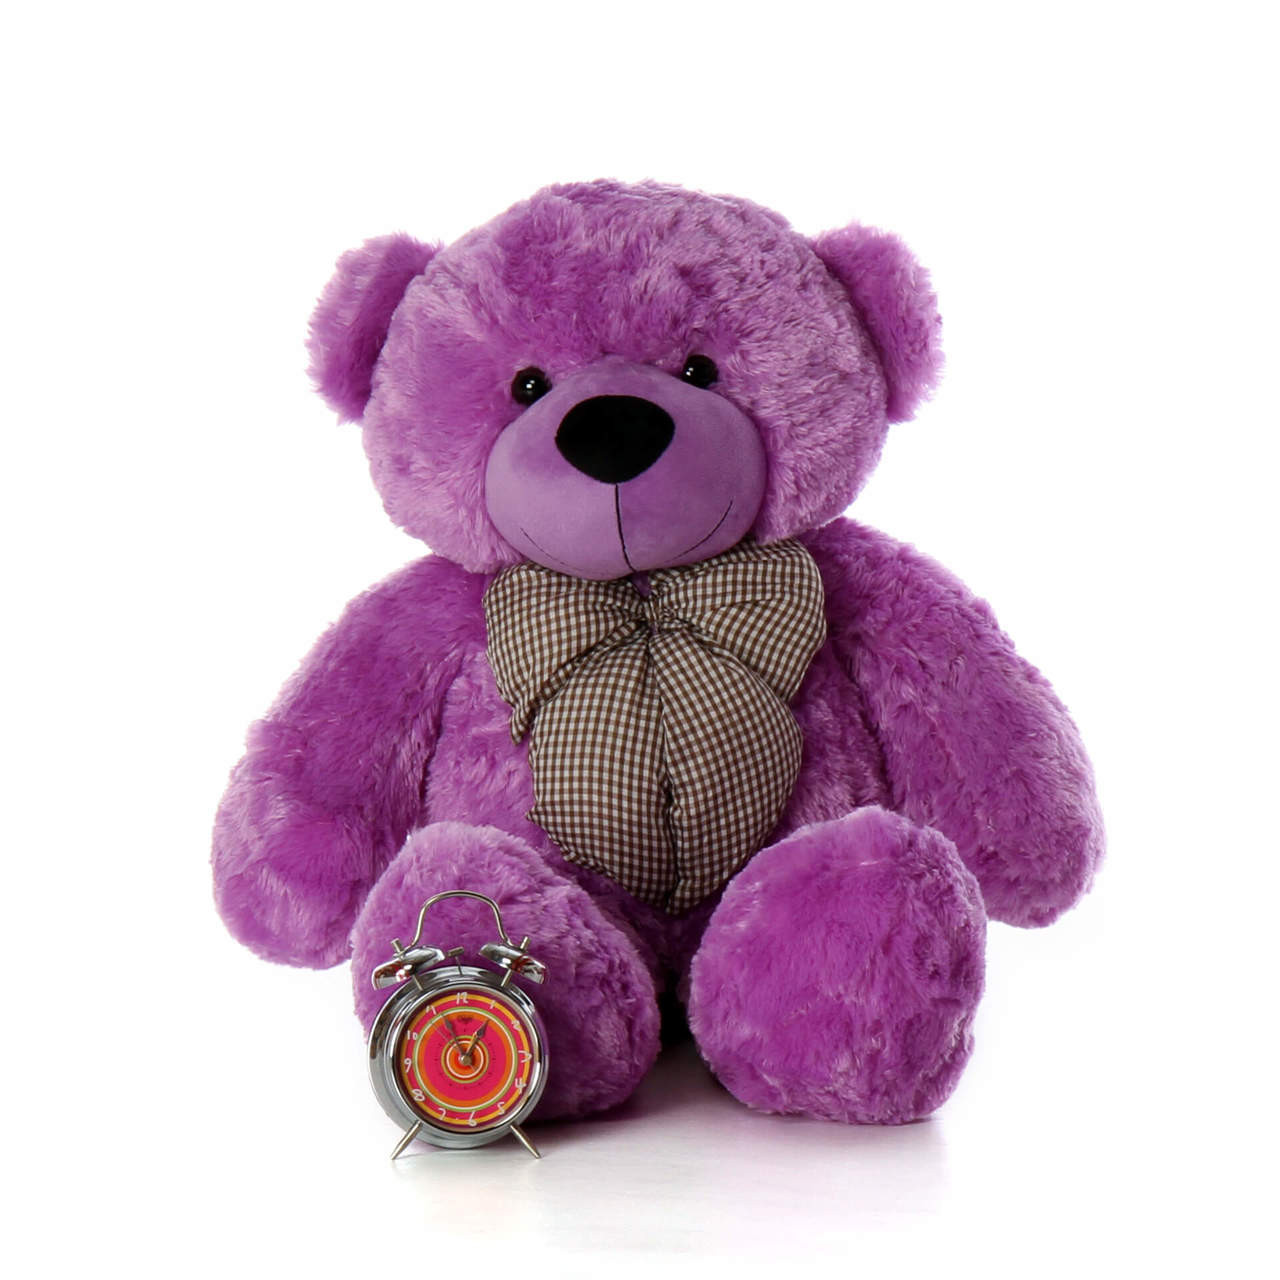 DeeDee Cuddles Giant Teddy bear over 3ft tall most beautiful bright purple fur